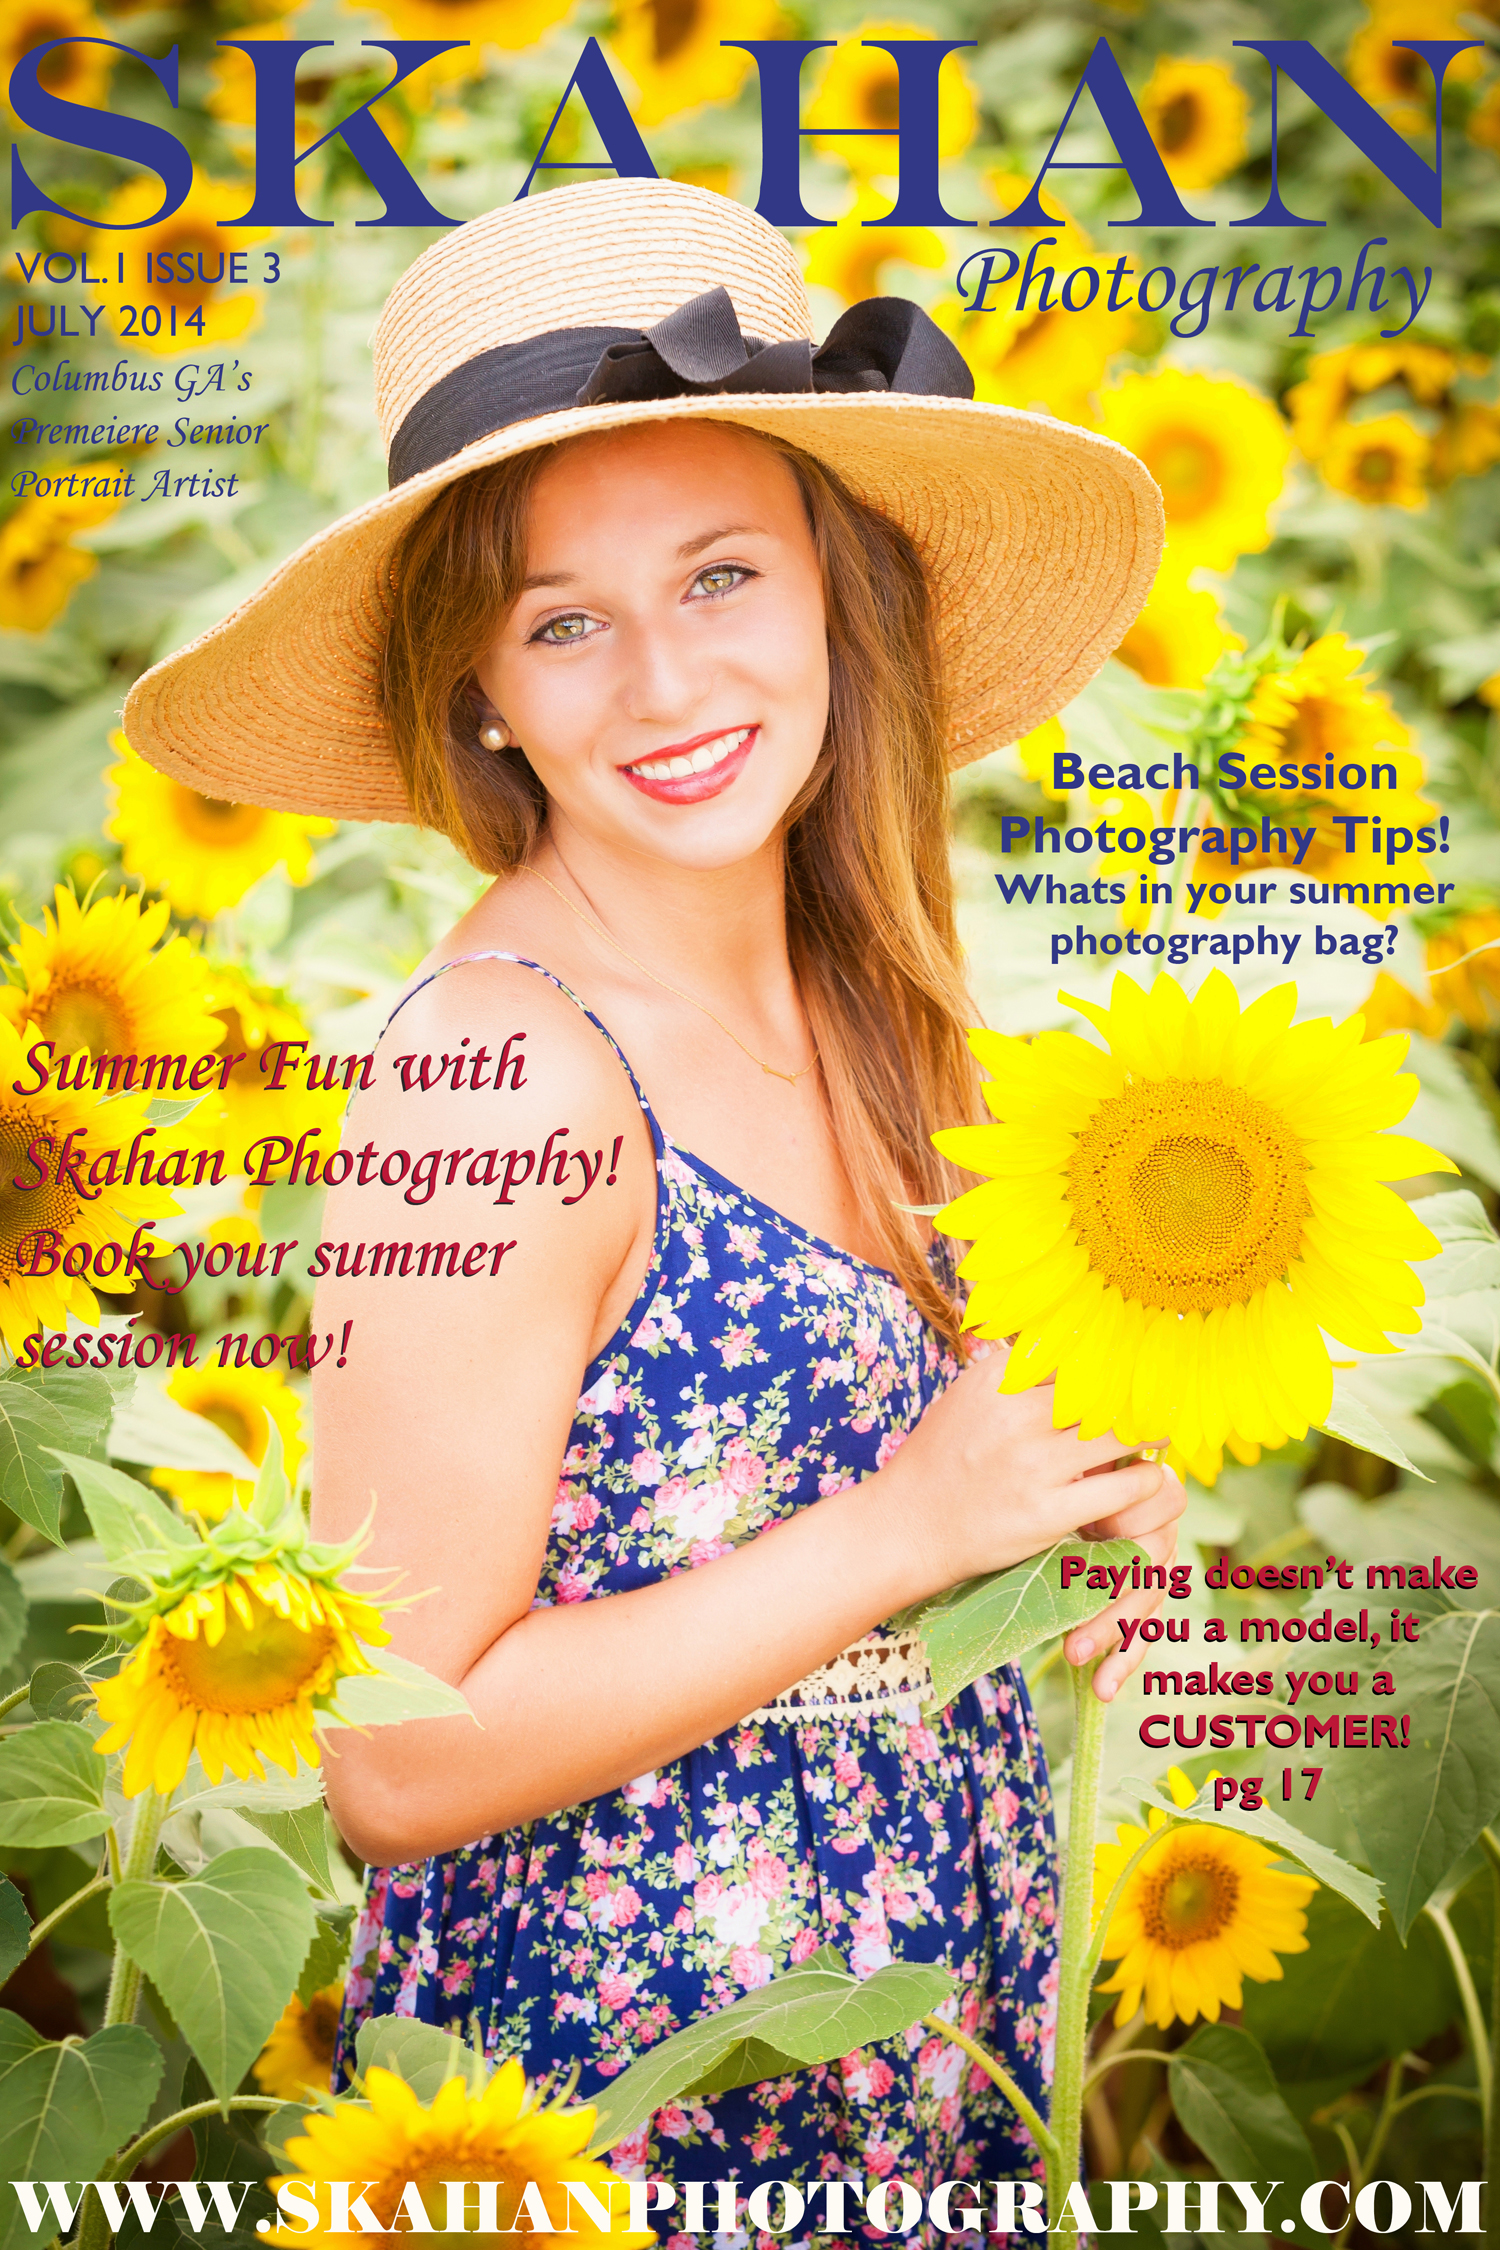 Volume 1 Issue 3 July 2014